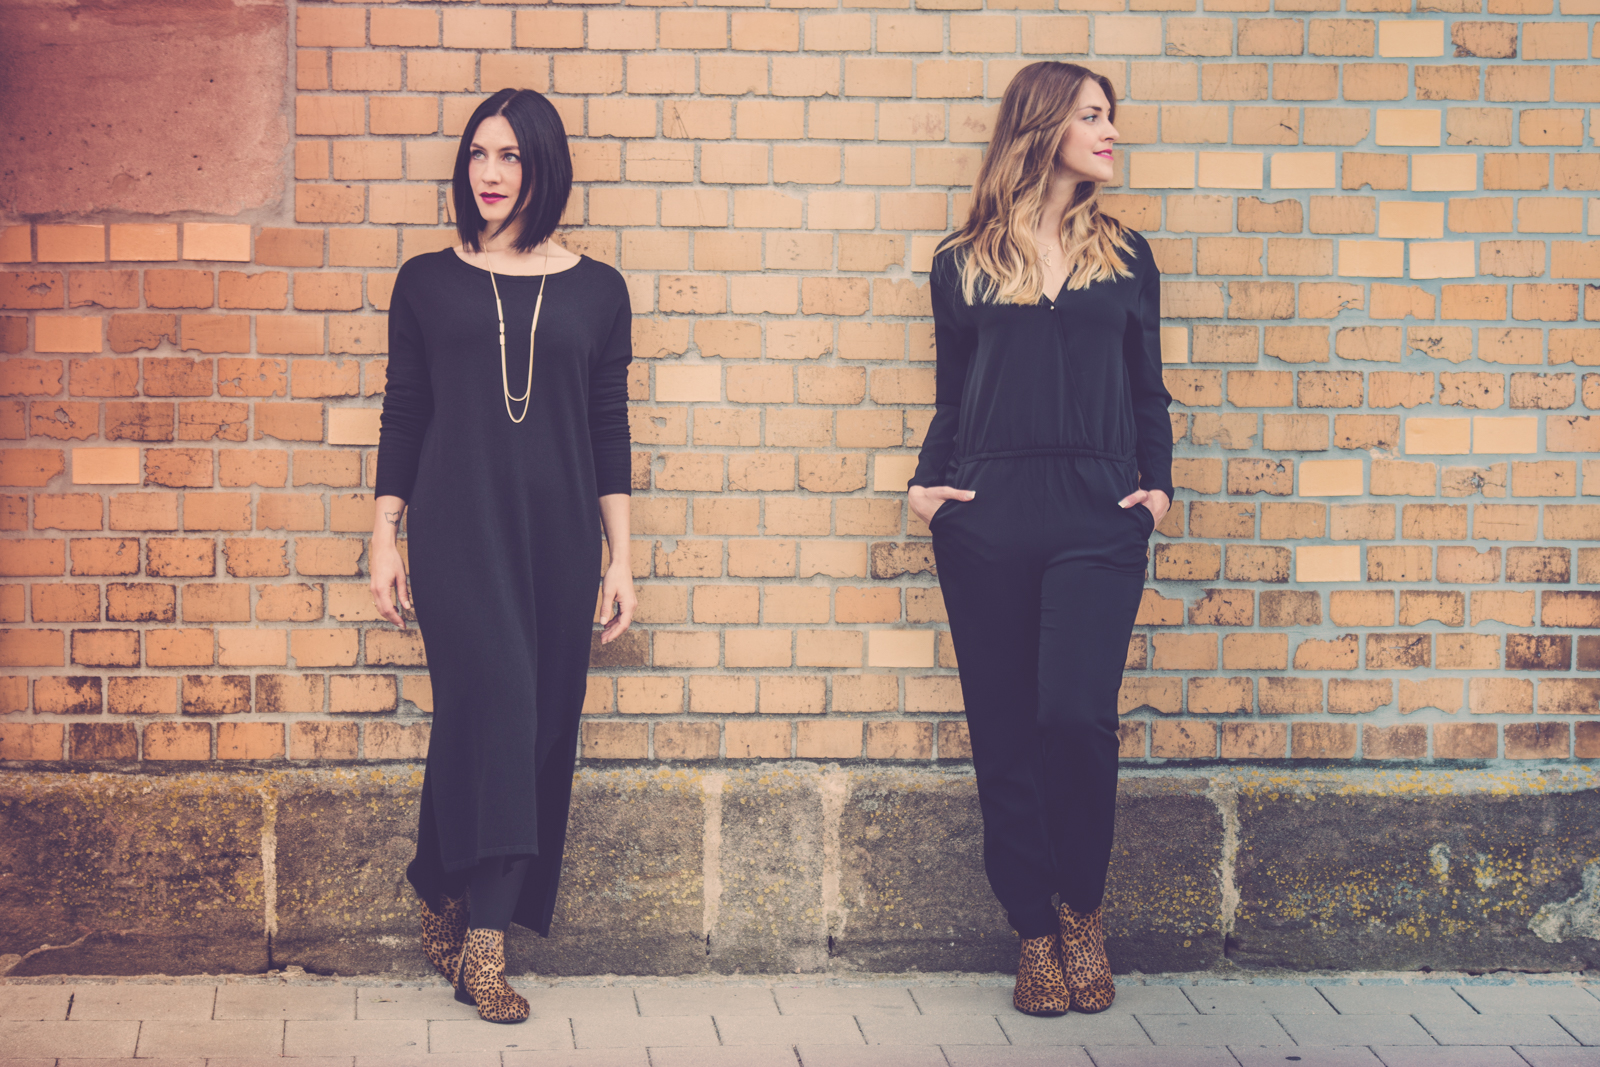 Babybauch-sisters-9945